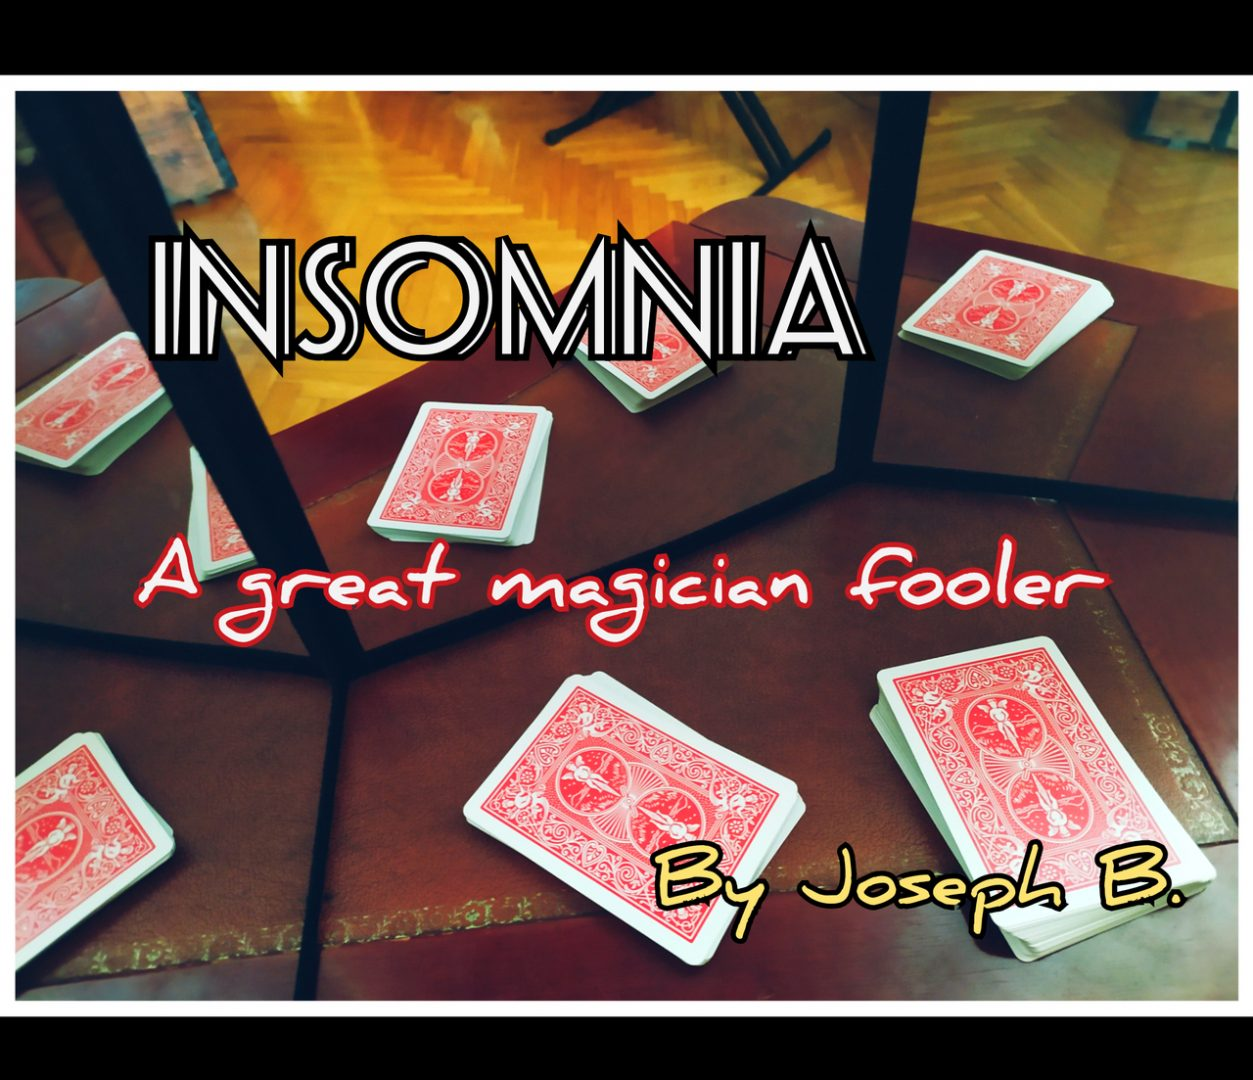 Insomnia by Joseph B (MP4 Video Download)